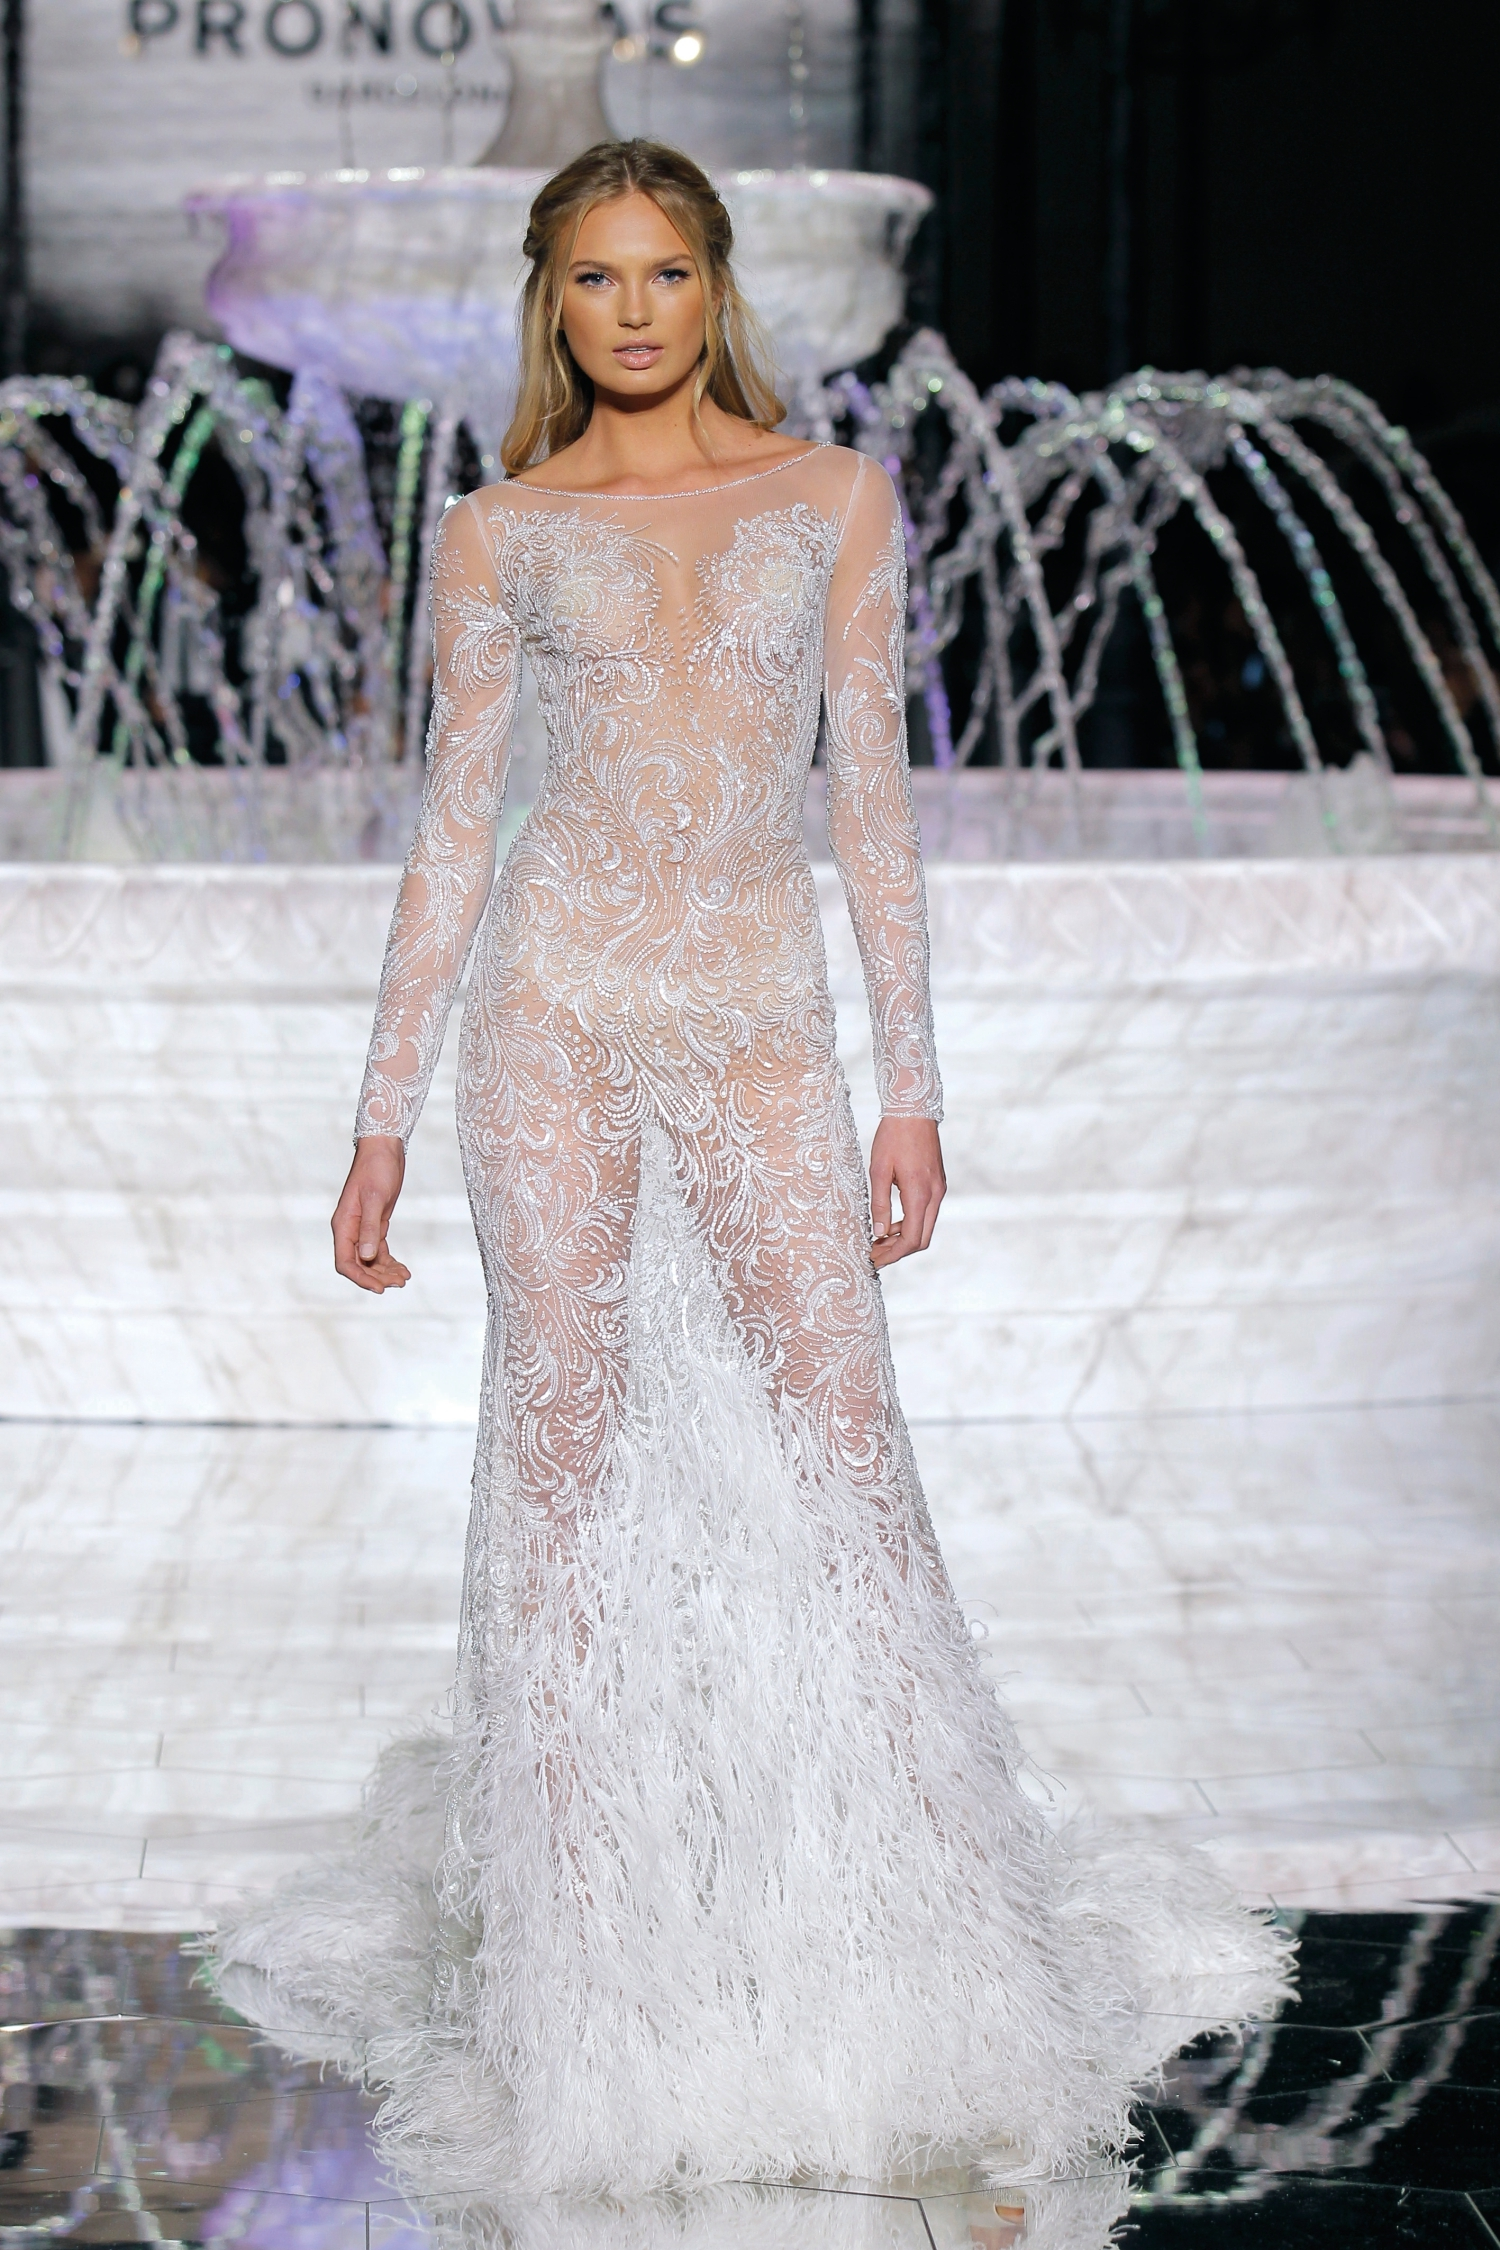 1-PRONOVIAS FASHION SHOW_Risuena